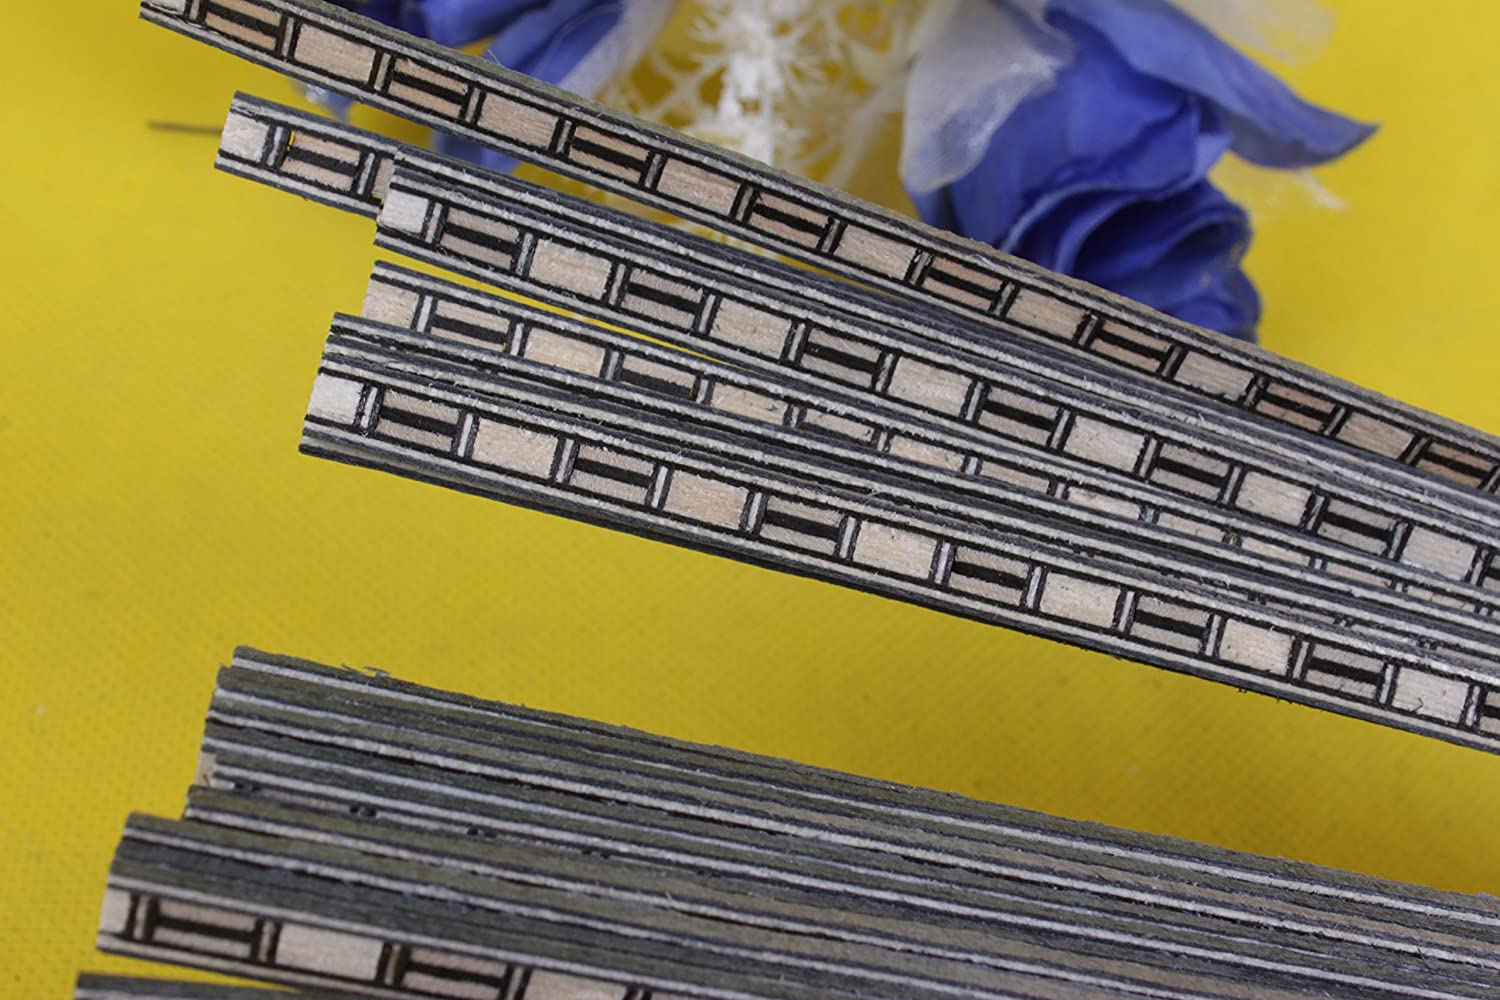 Yinfente Austin Mall 20x Guitar Strip Our shop OFFers the best service Purfling Inlay Figured Luthier